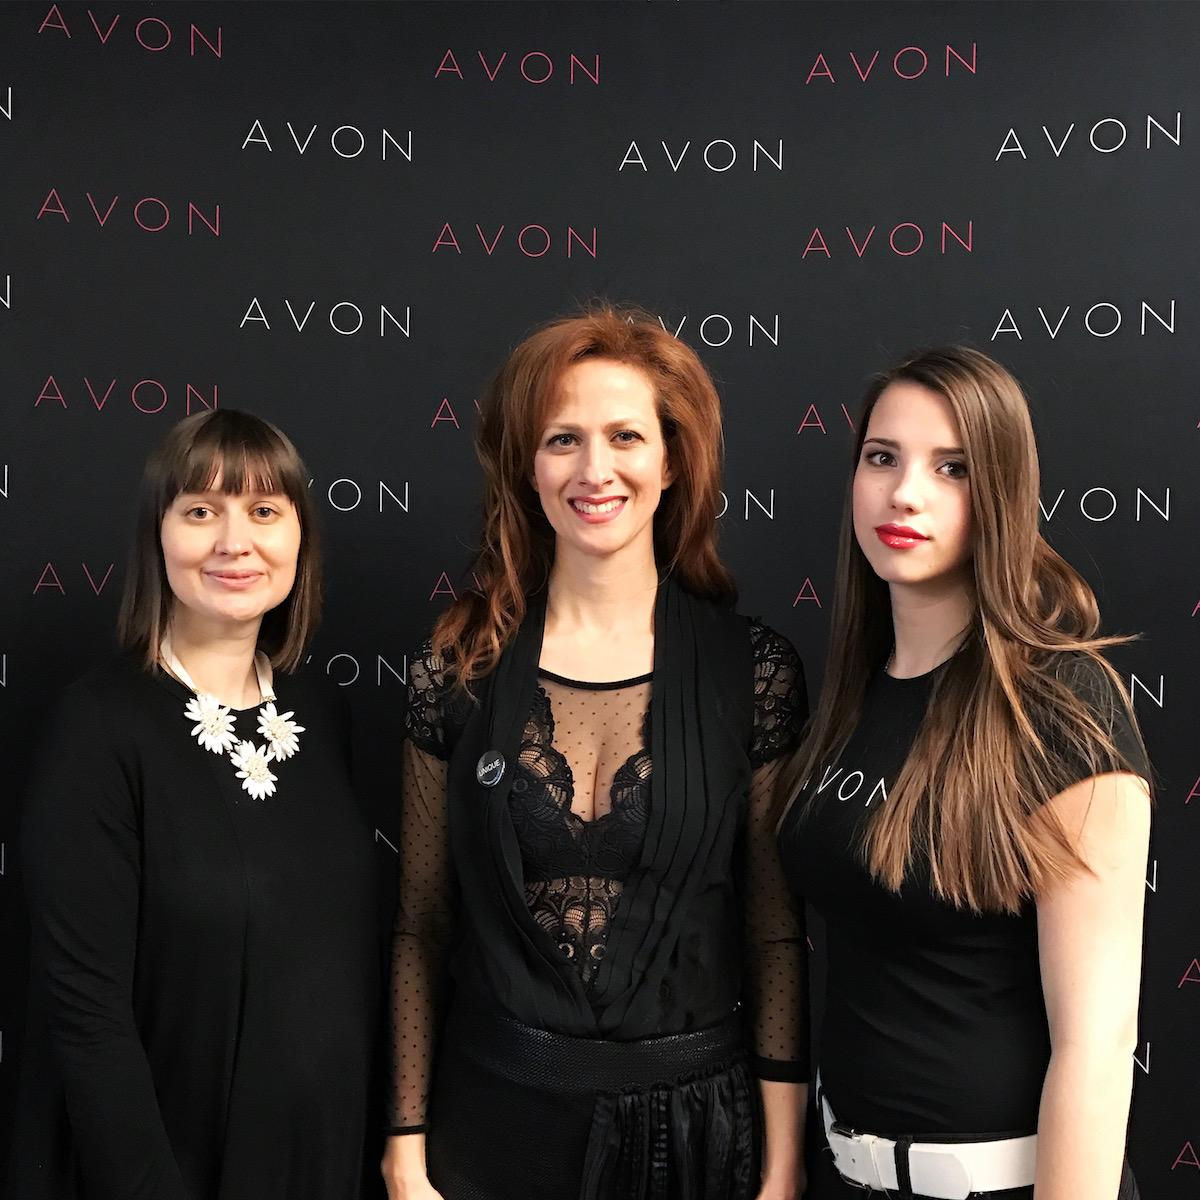 Press Event Avon Mark licila Bronja Grauf Odlazek NIka Veger model